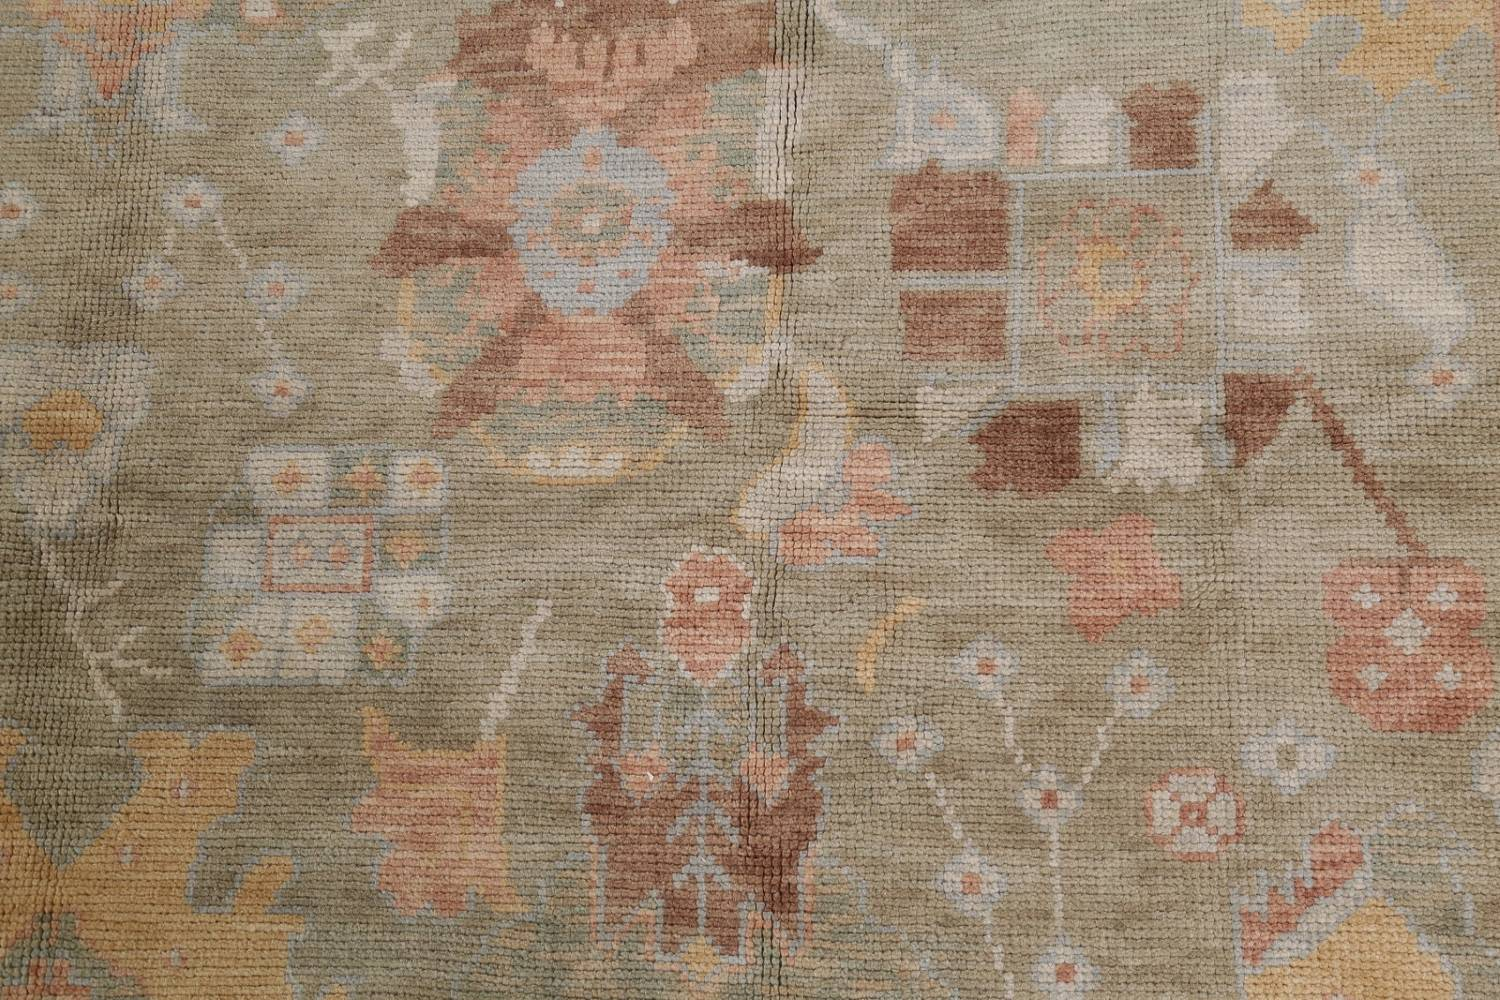 Vegetable Dye Muted Green Oushak Turkish Hand-Knotted Area Rug 9x12 image 12